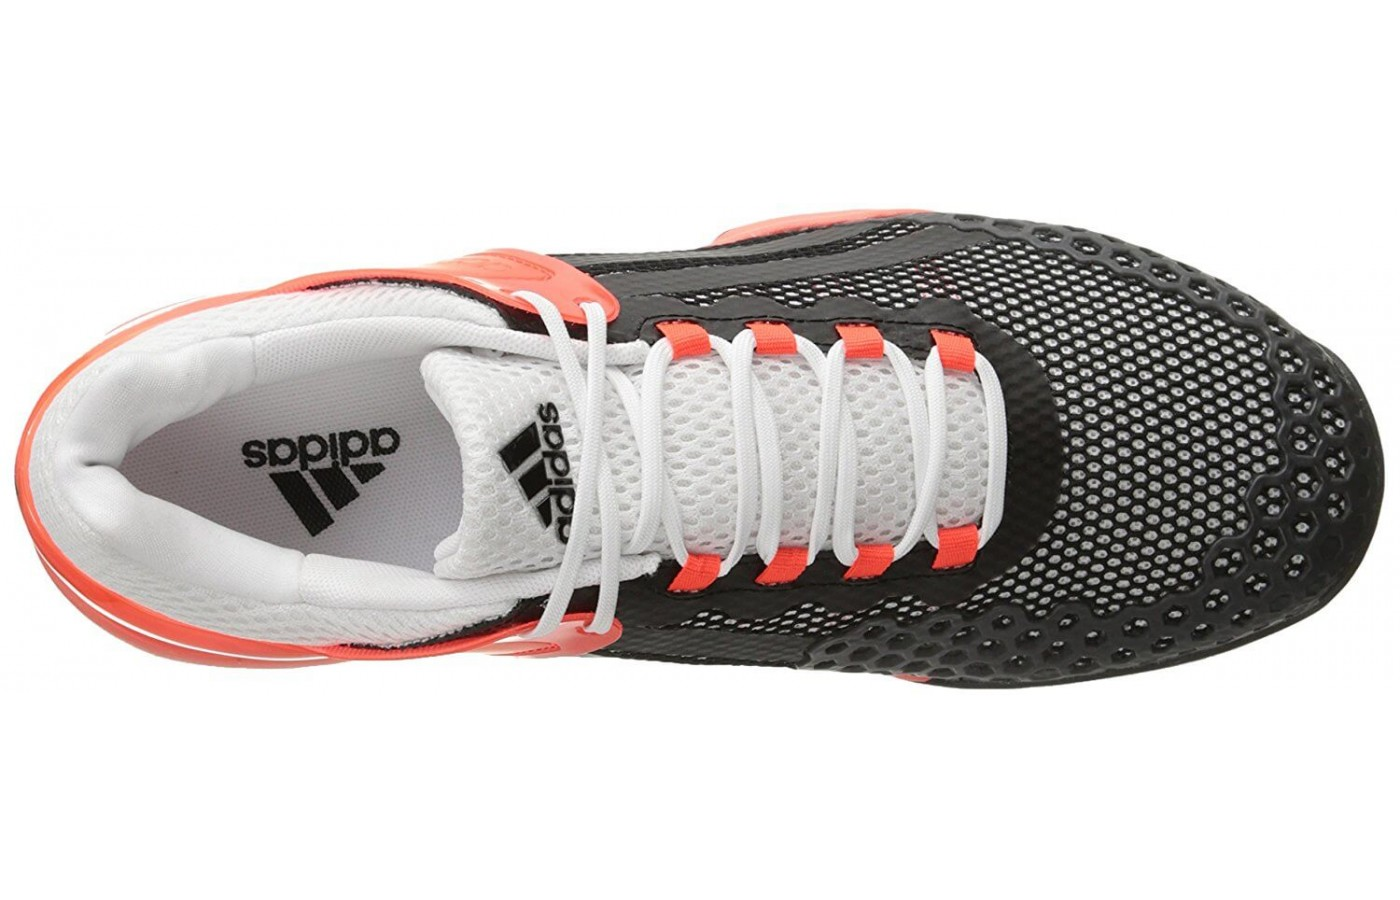 Additional protective features have been added to the Adidas Adizero Ubersonic's upper.